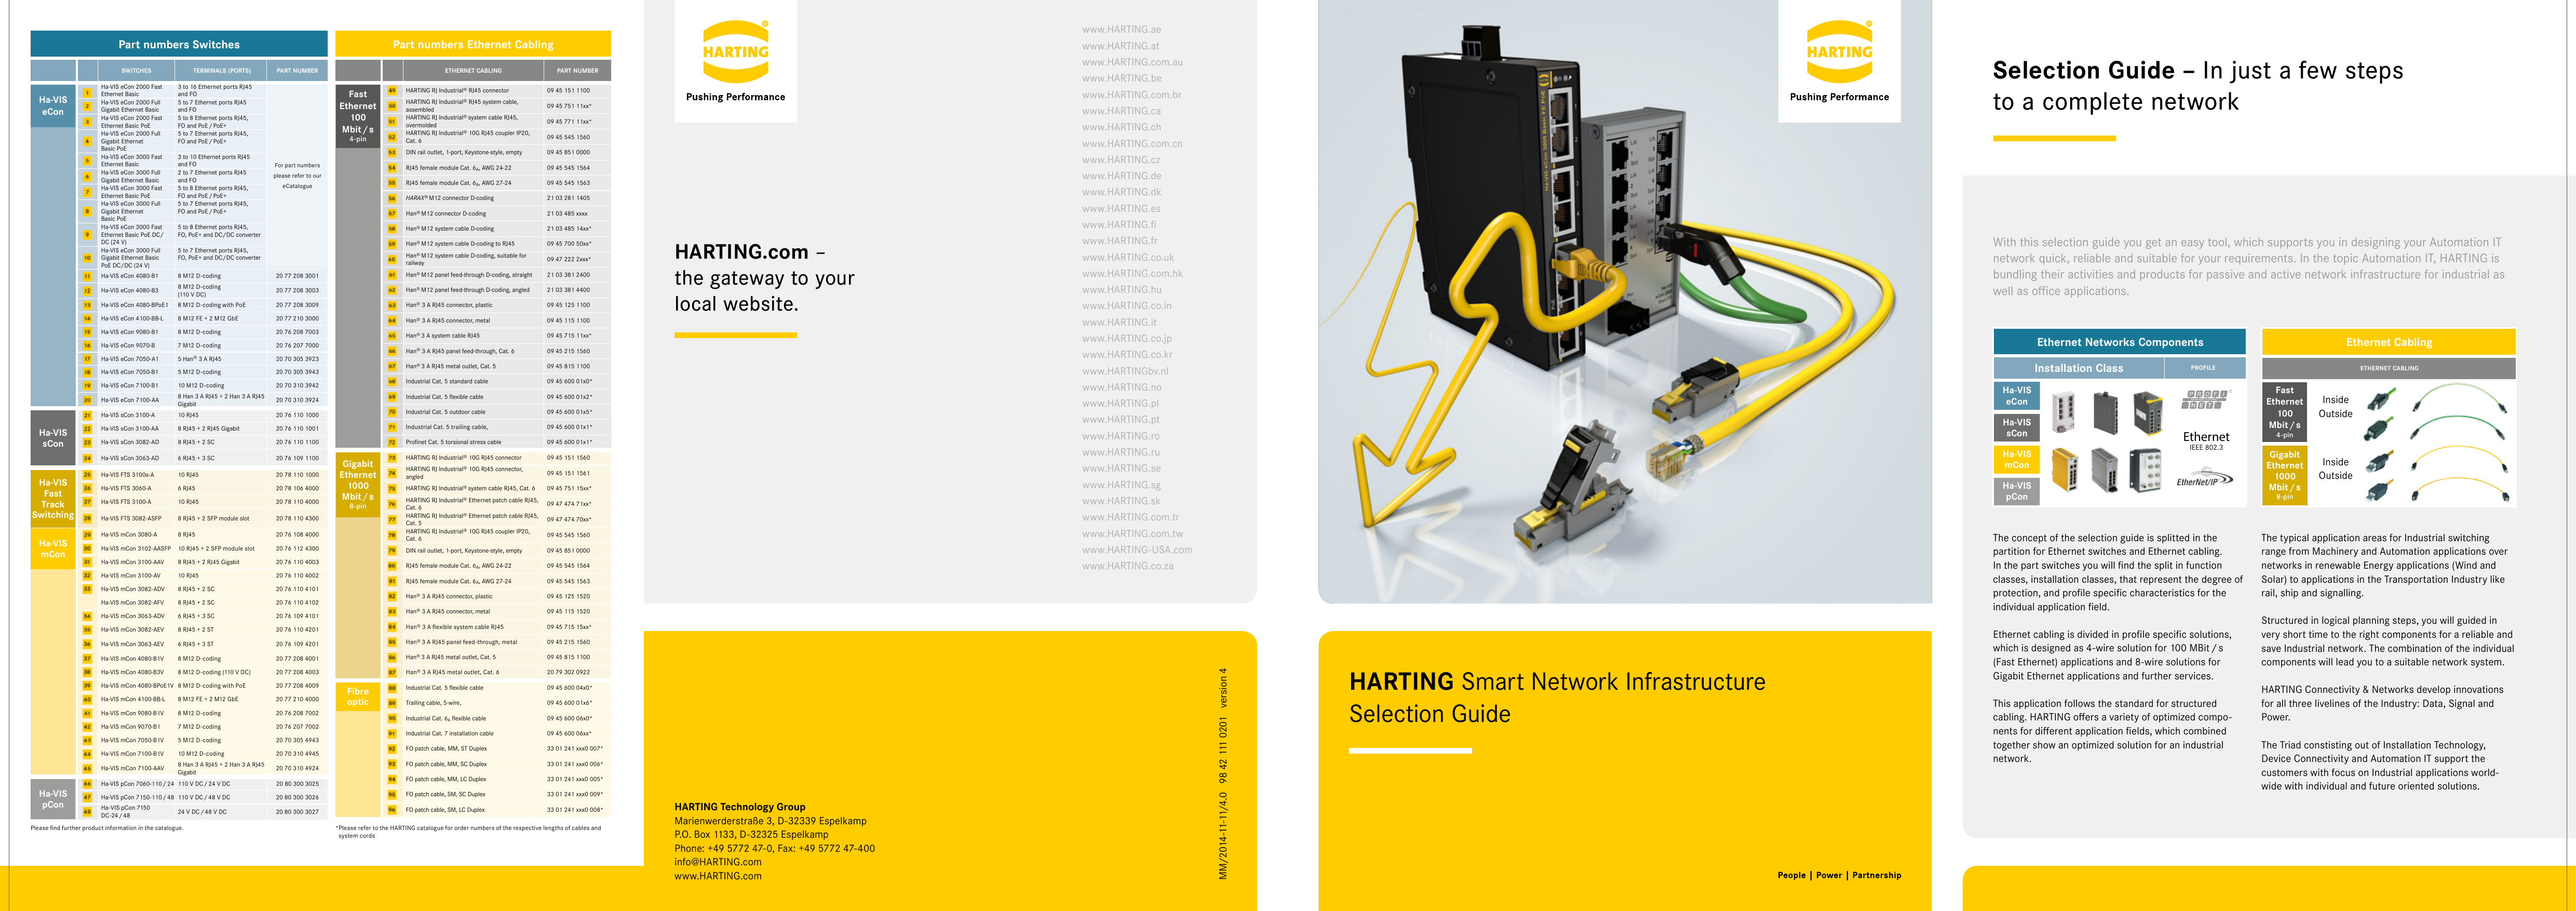 HARTING Smart Network Infrastructure Selection Guide